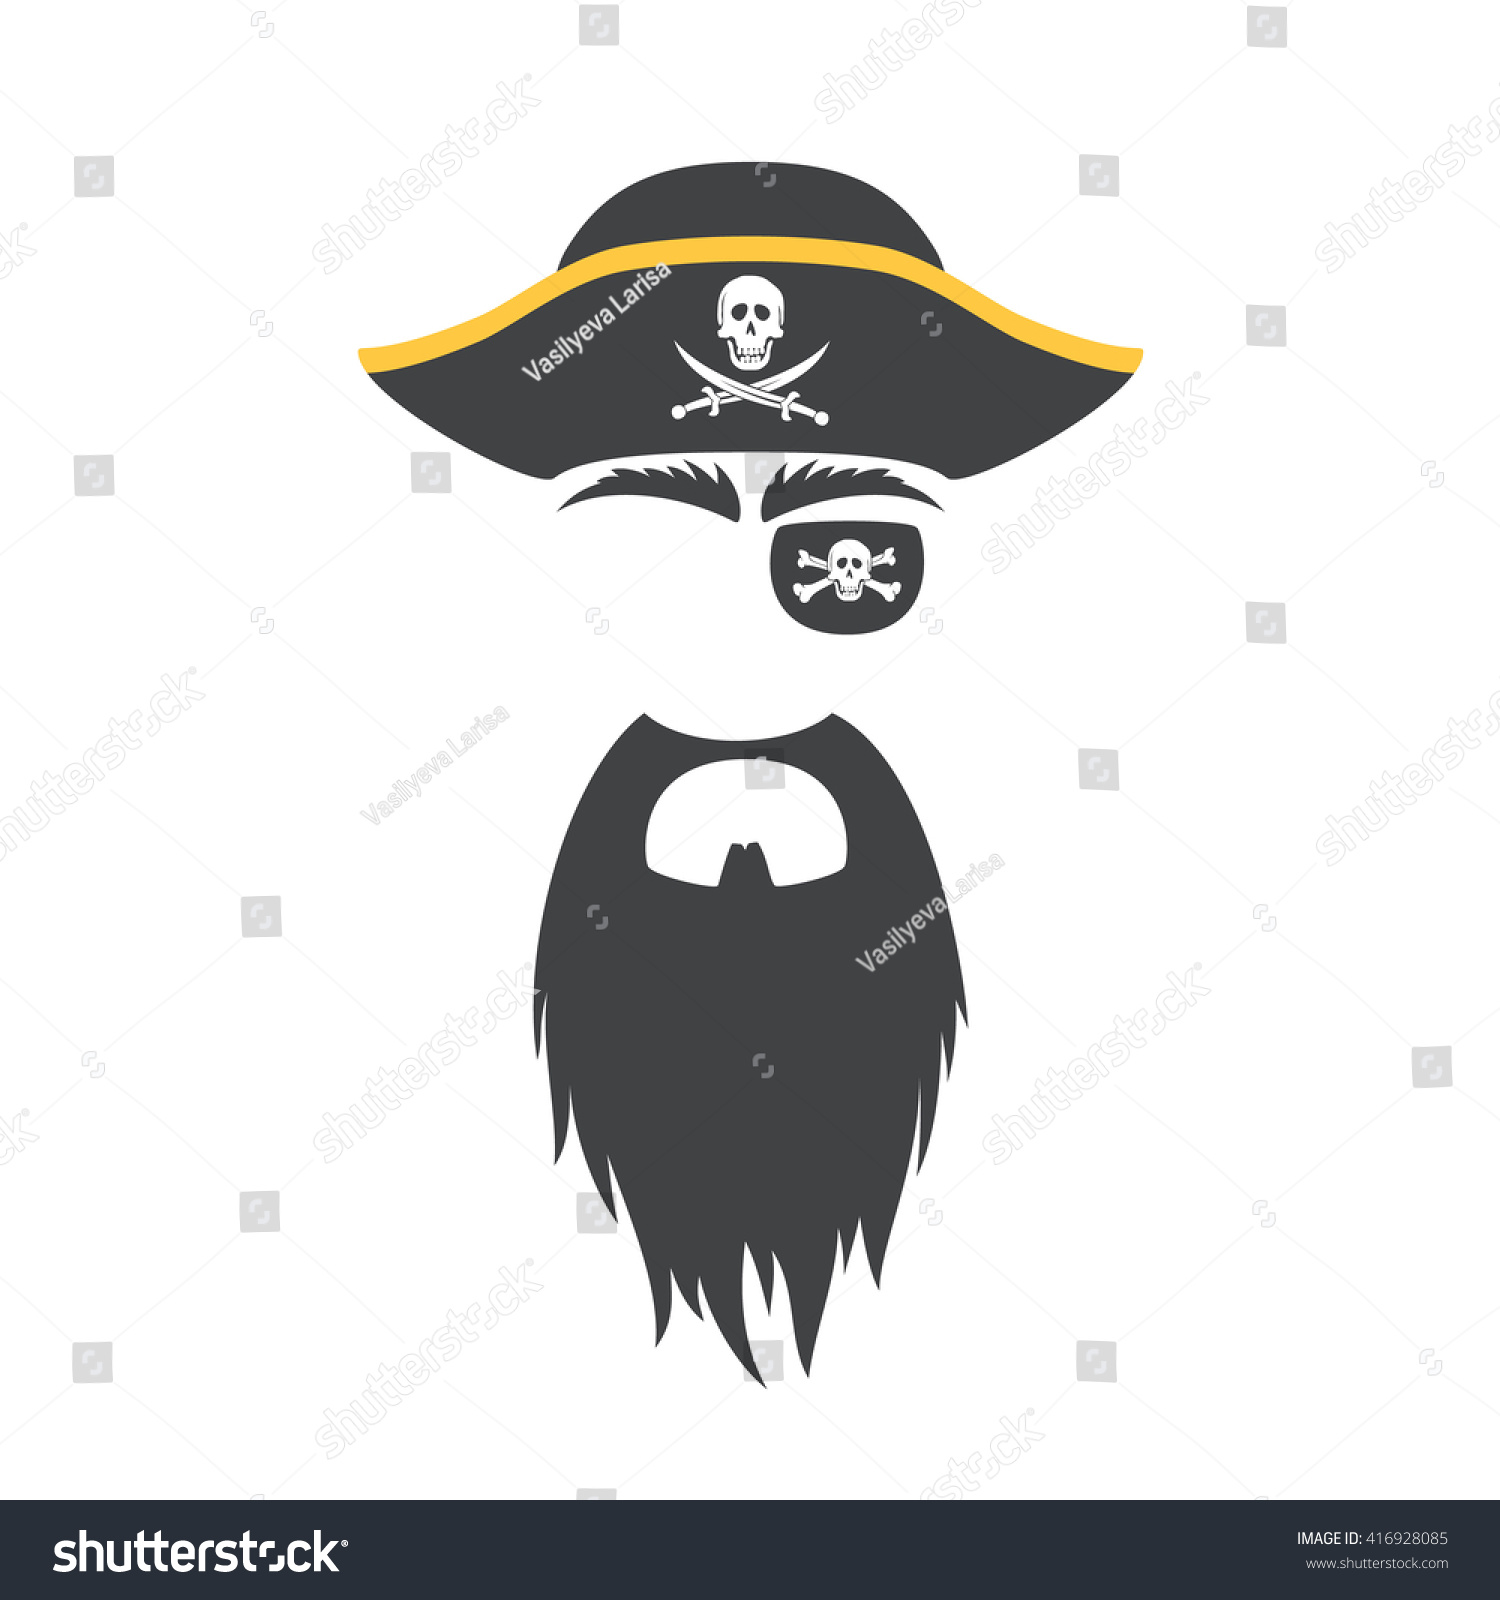 Pirate face vector - photo#23